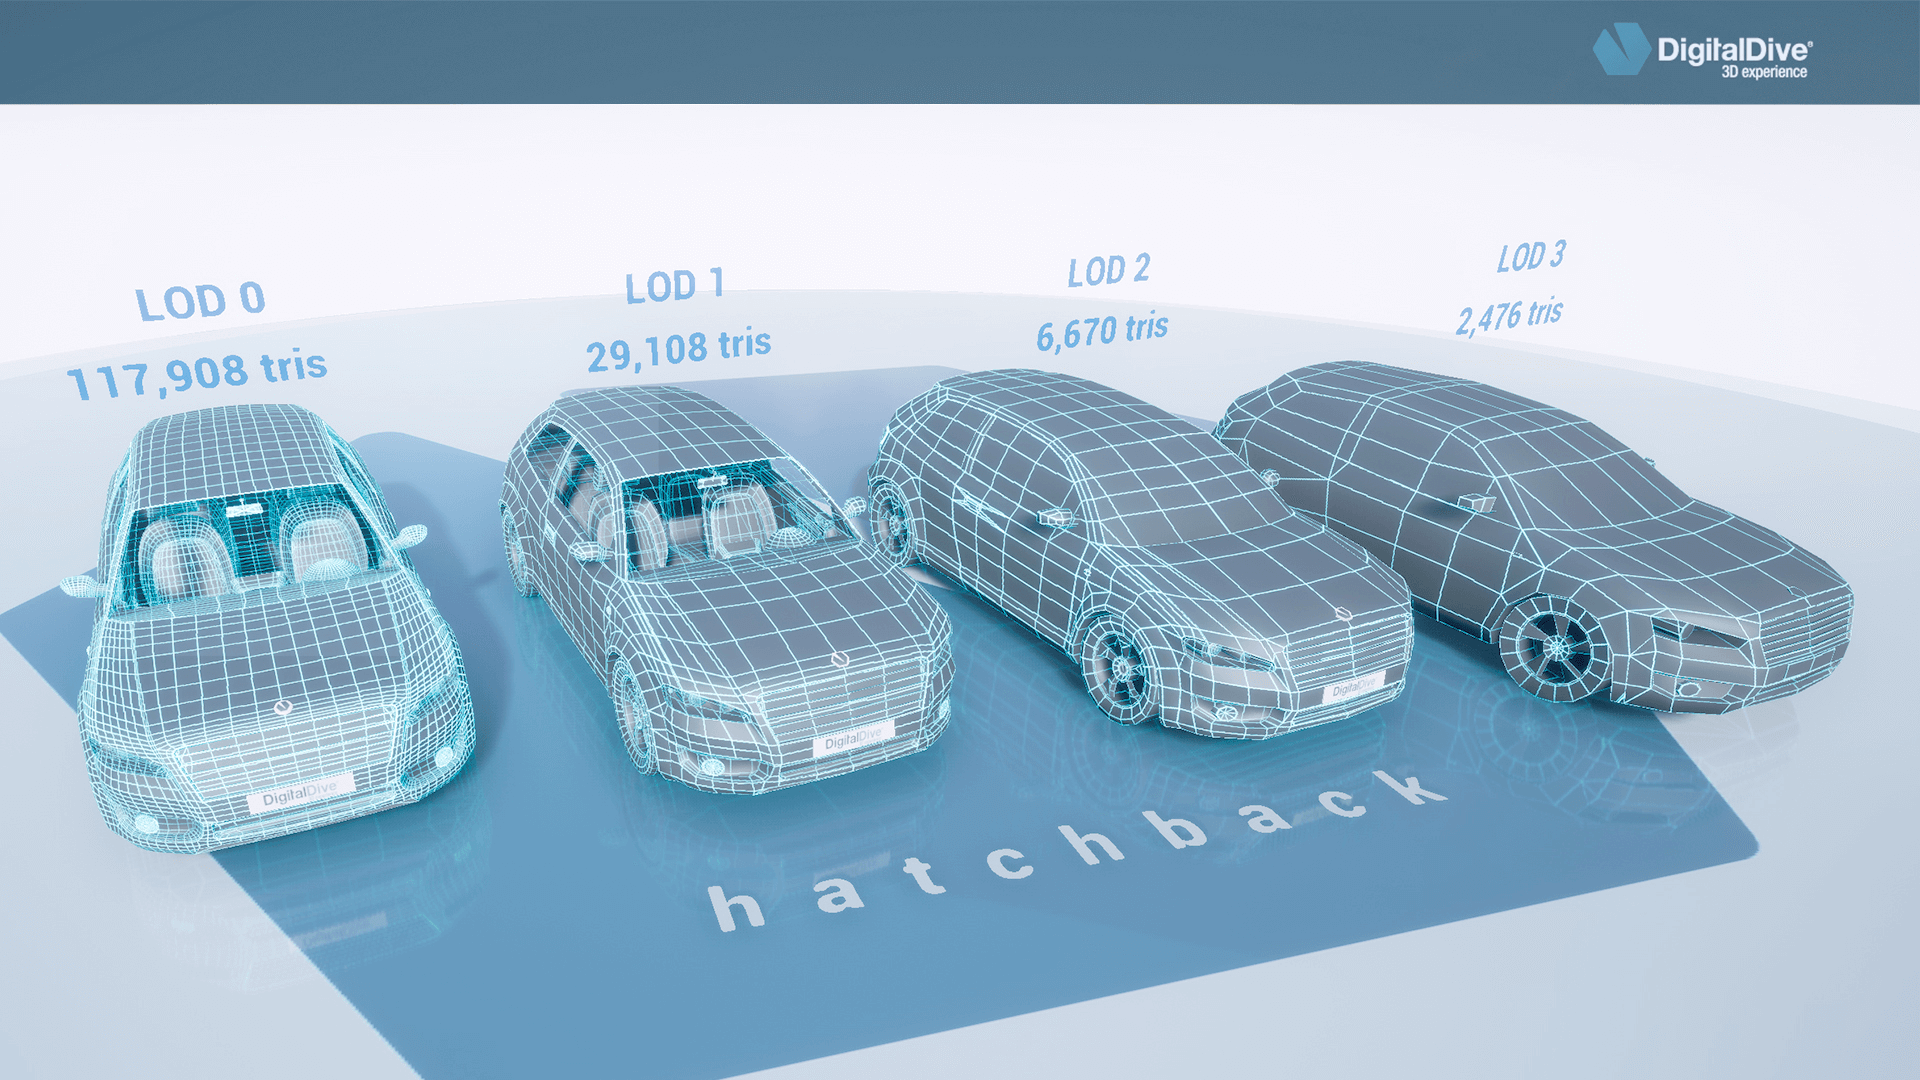 Driveable cars basic pack 3d assets blueprints by digital dive driveable cars basic pack 3d assets blueprints by digital dive studio in blueprints ue4 marketplace malvernweather Gallery